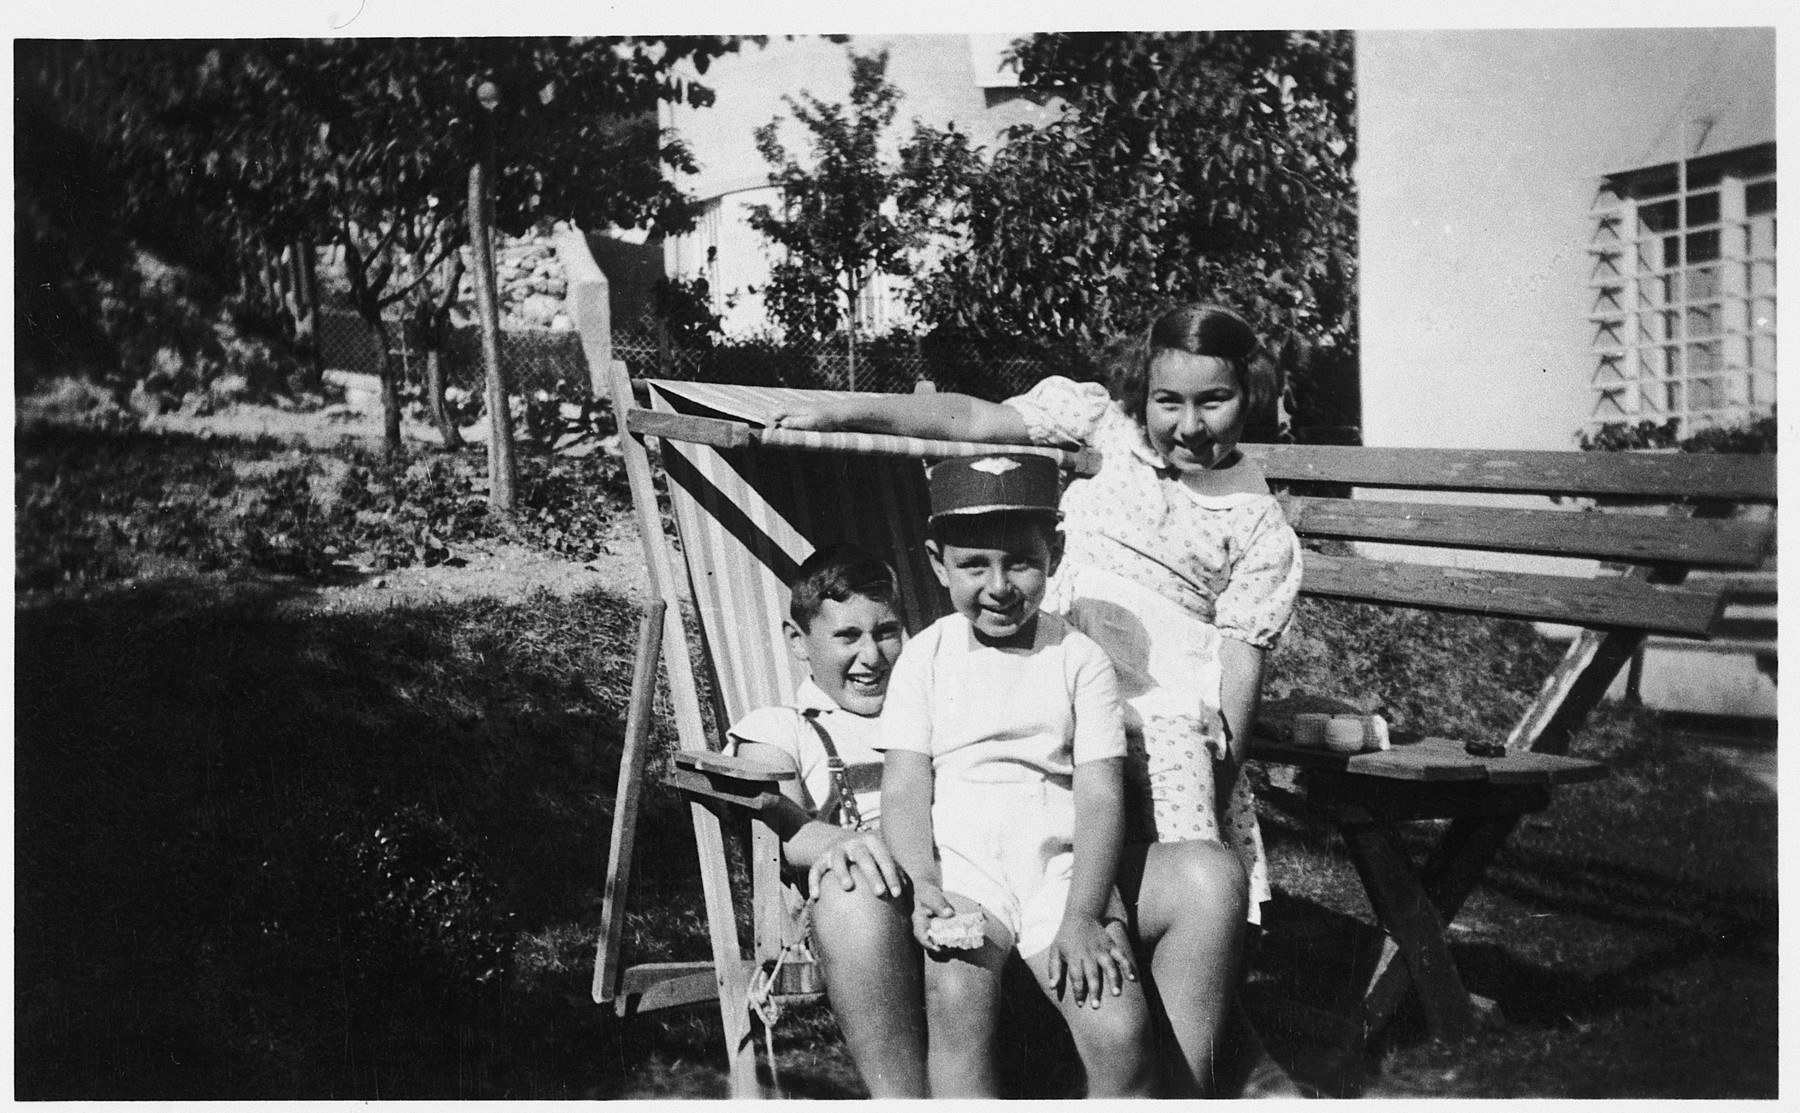 Three Jewish children share a lawn chair.  Pictured are Charlotte and Victor Neumann and their cousin, Erich Butchovits.